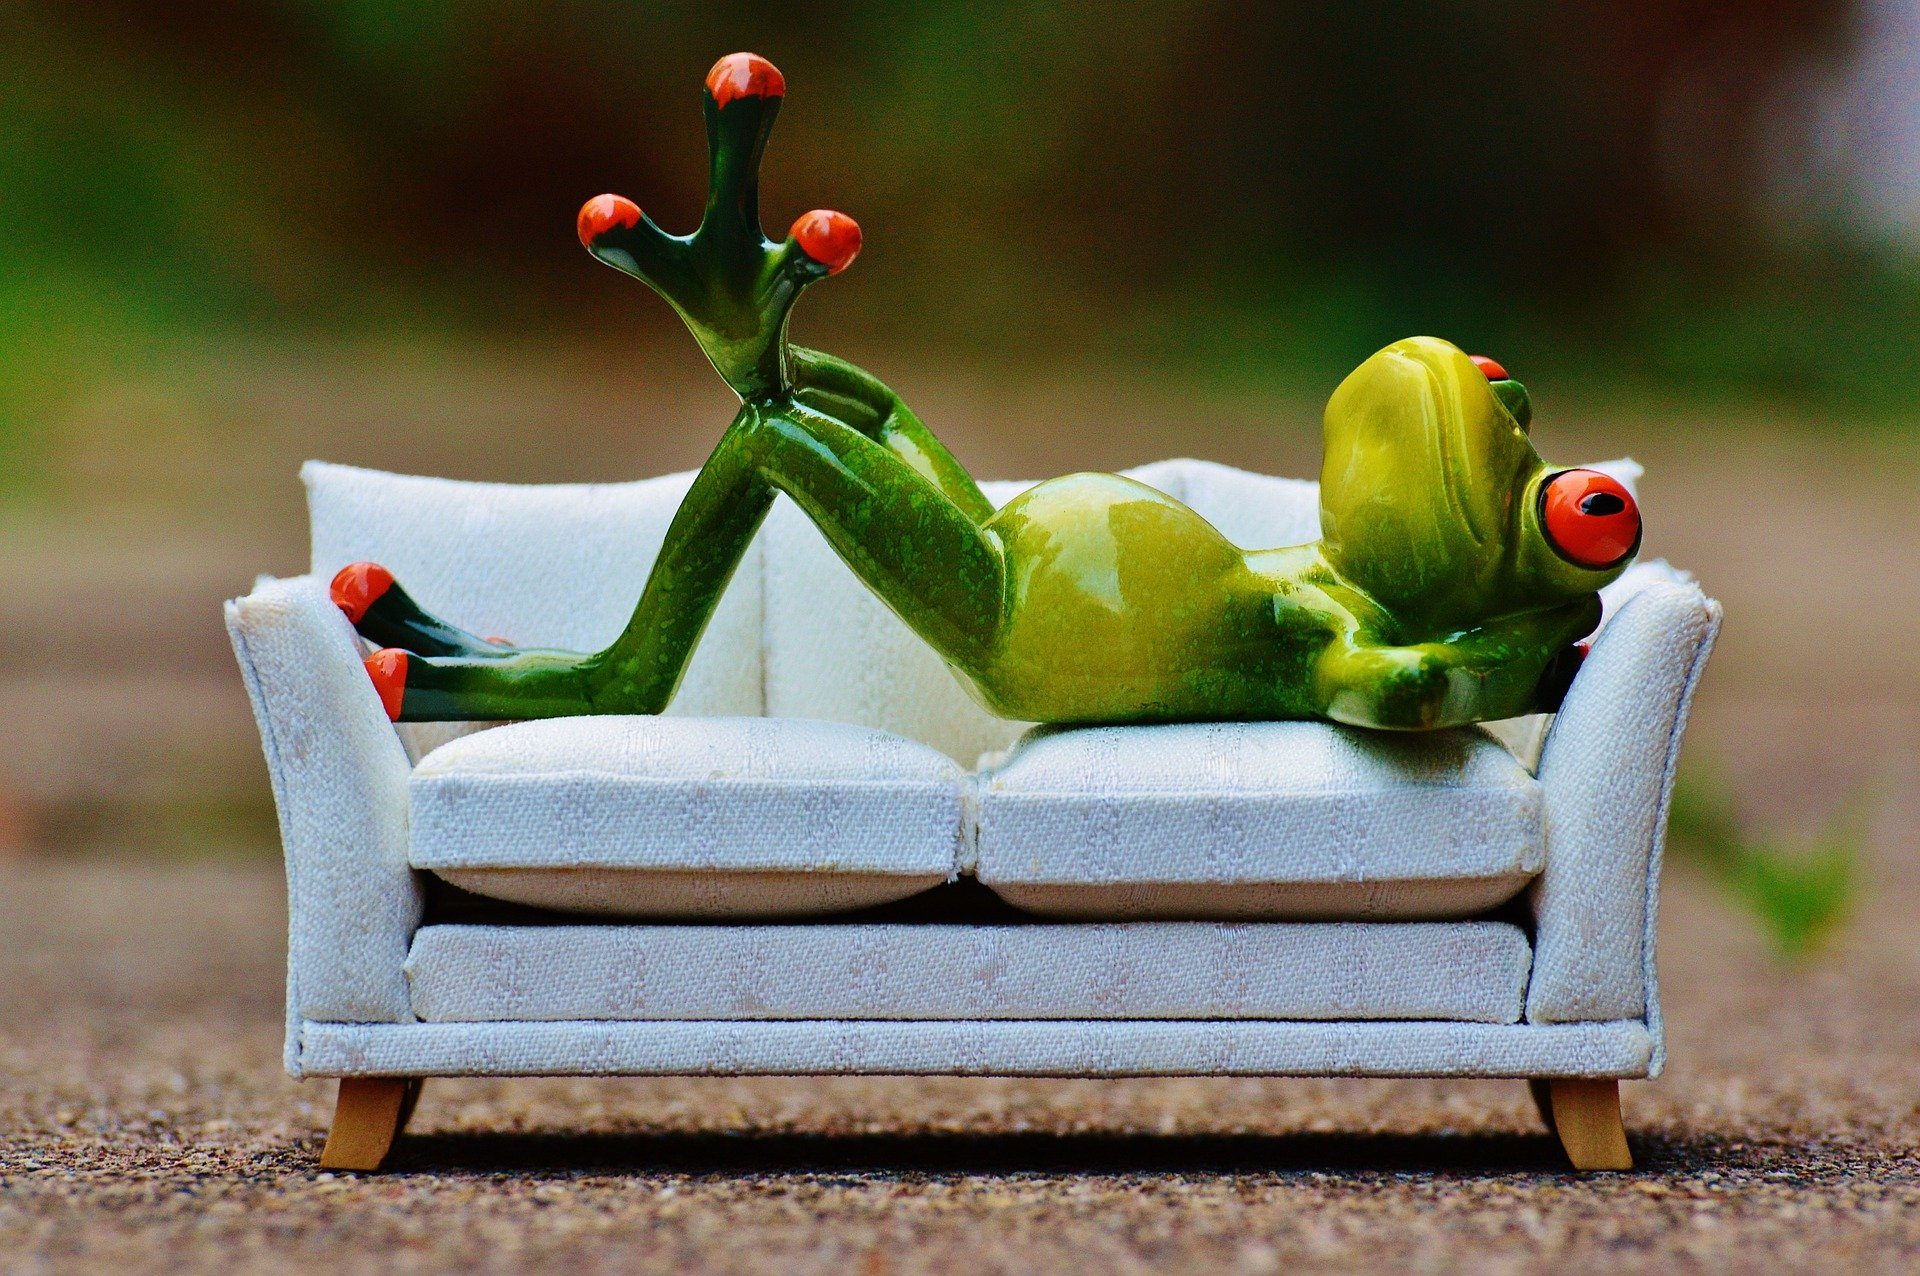 Picture of a plastic frog being lazy on a couch.